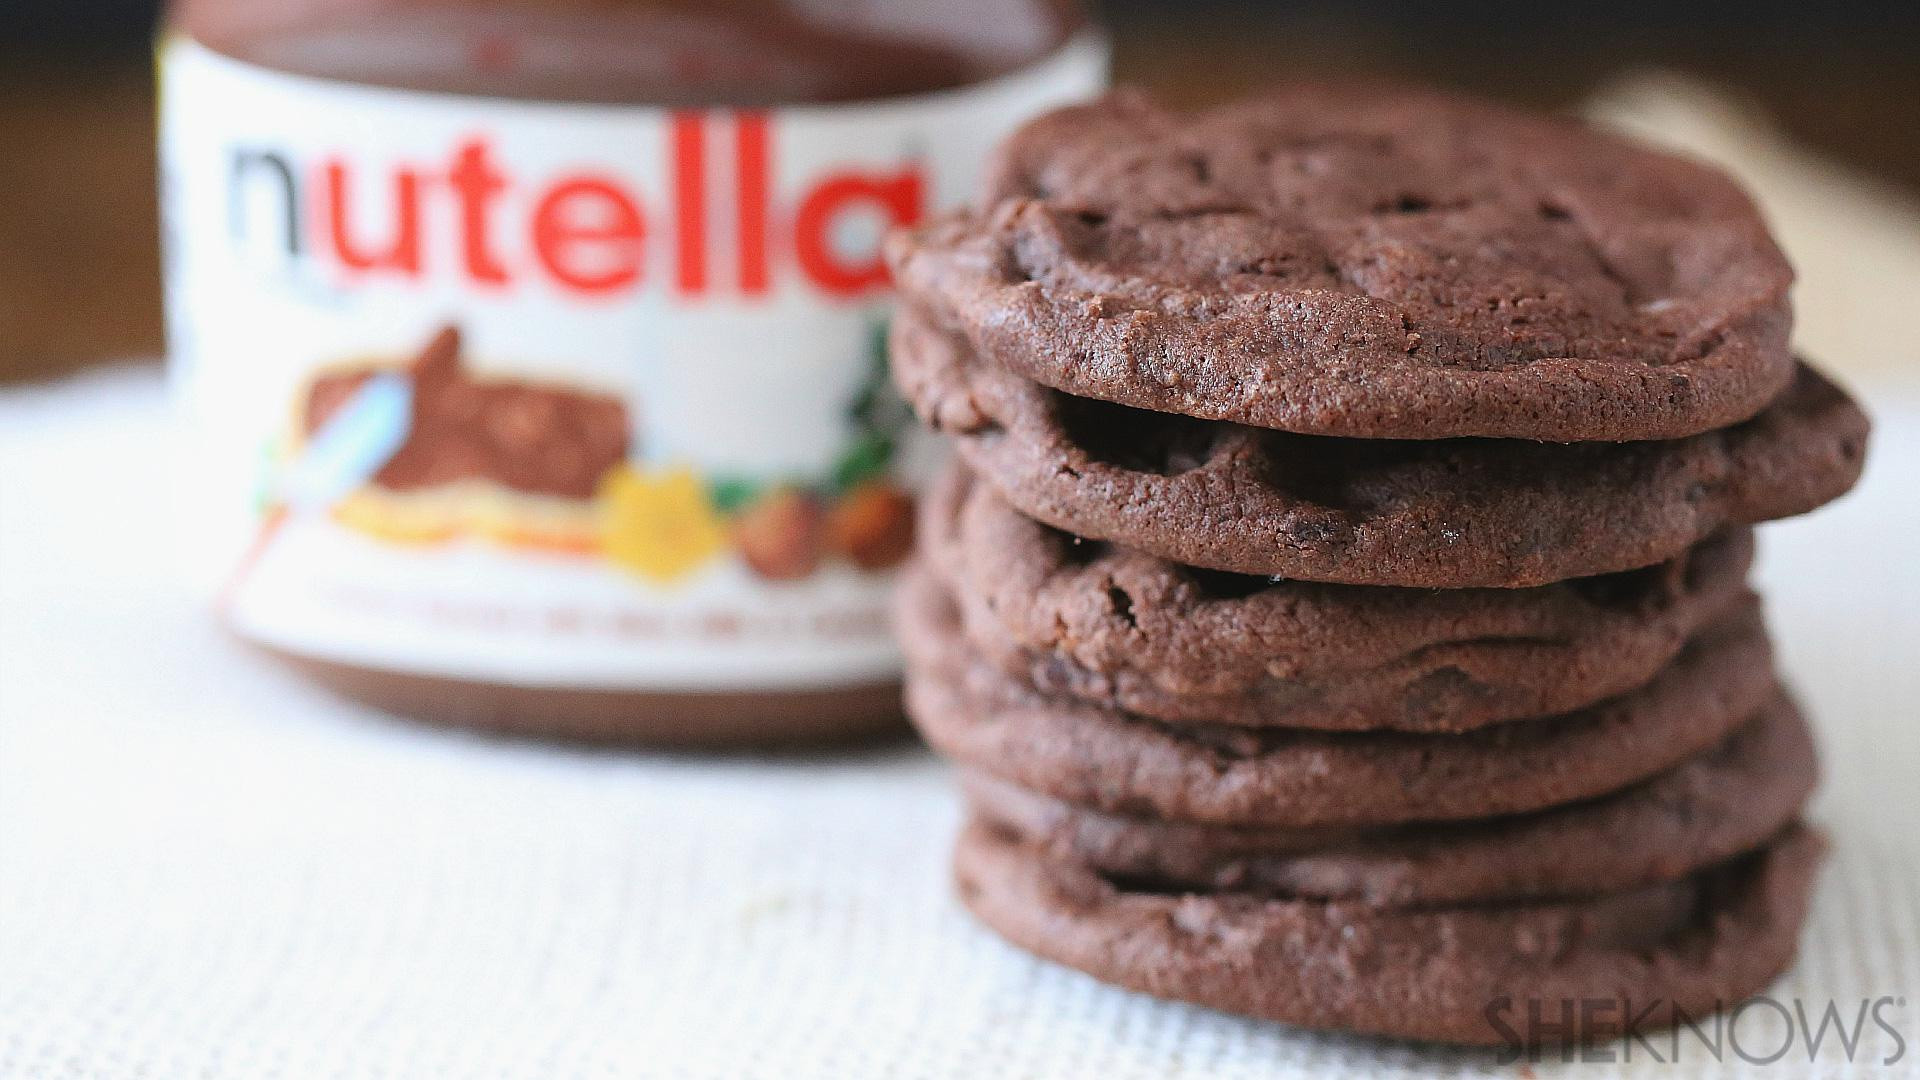 Nutella Dessert Recipes  3 Ingre nt Nutella cookies are the easiest dessert you